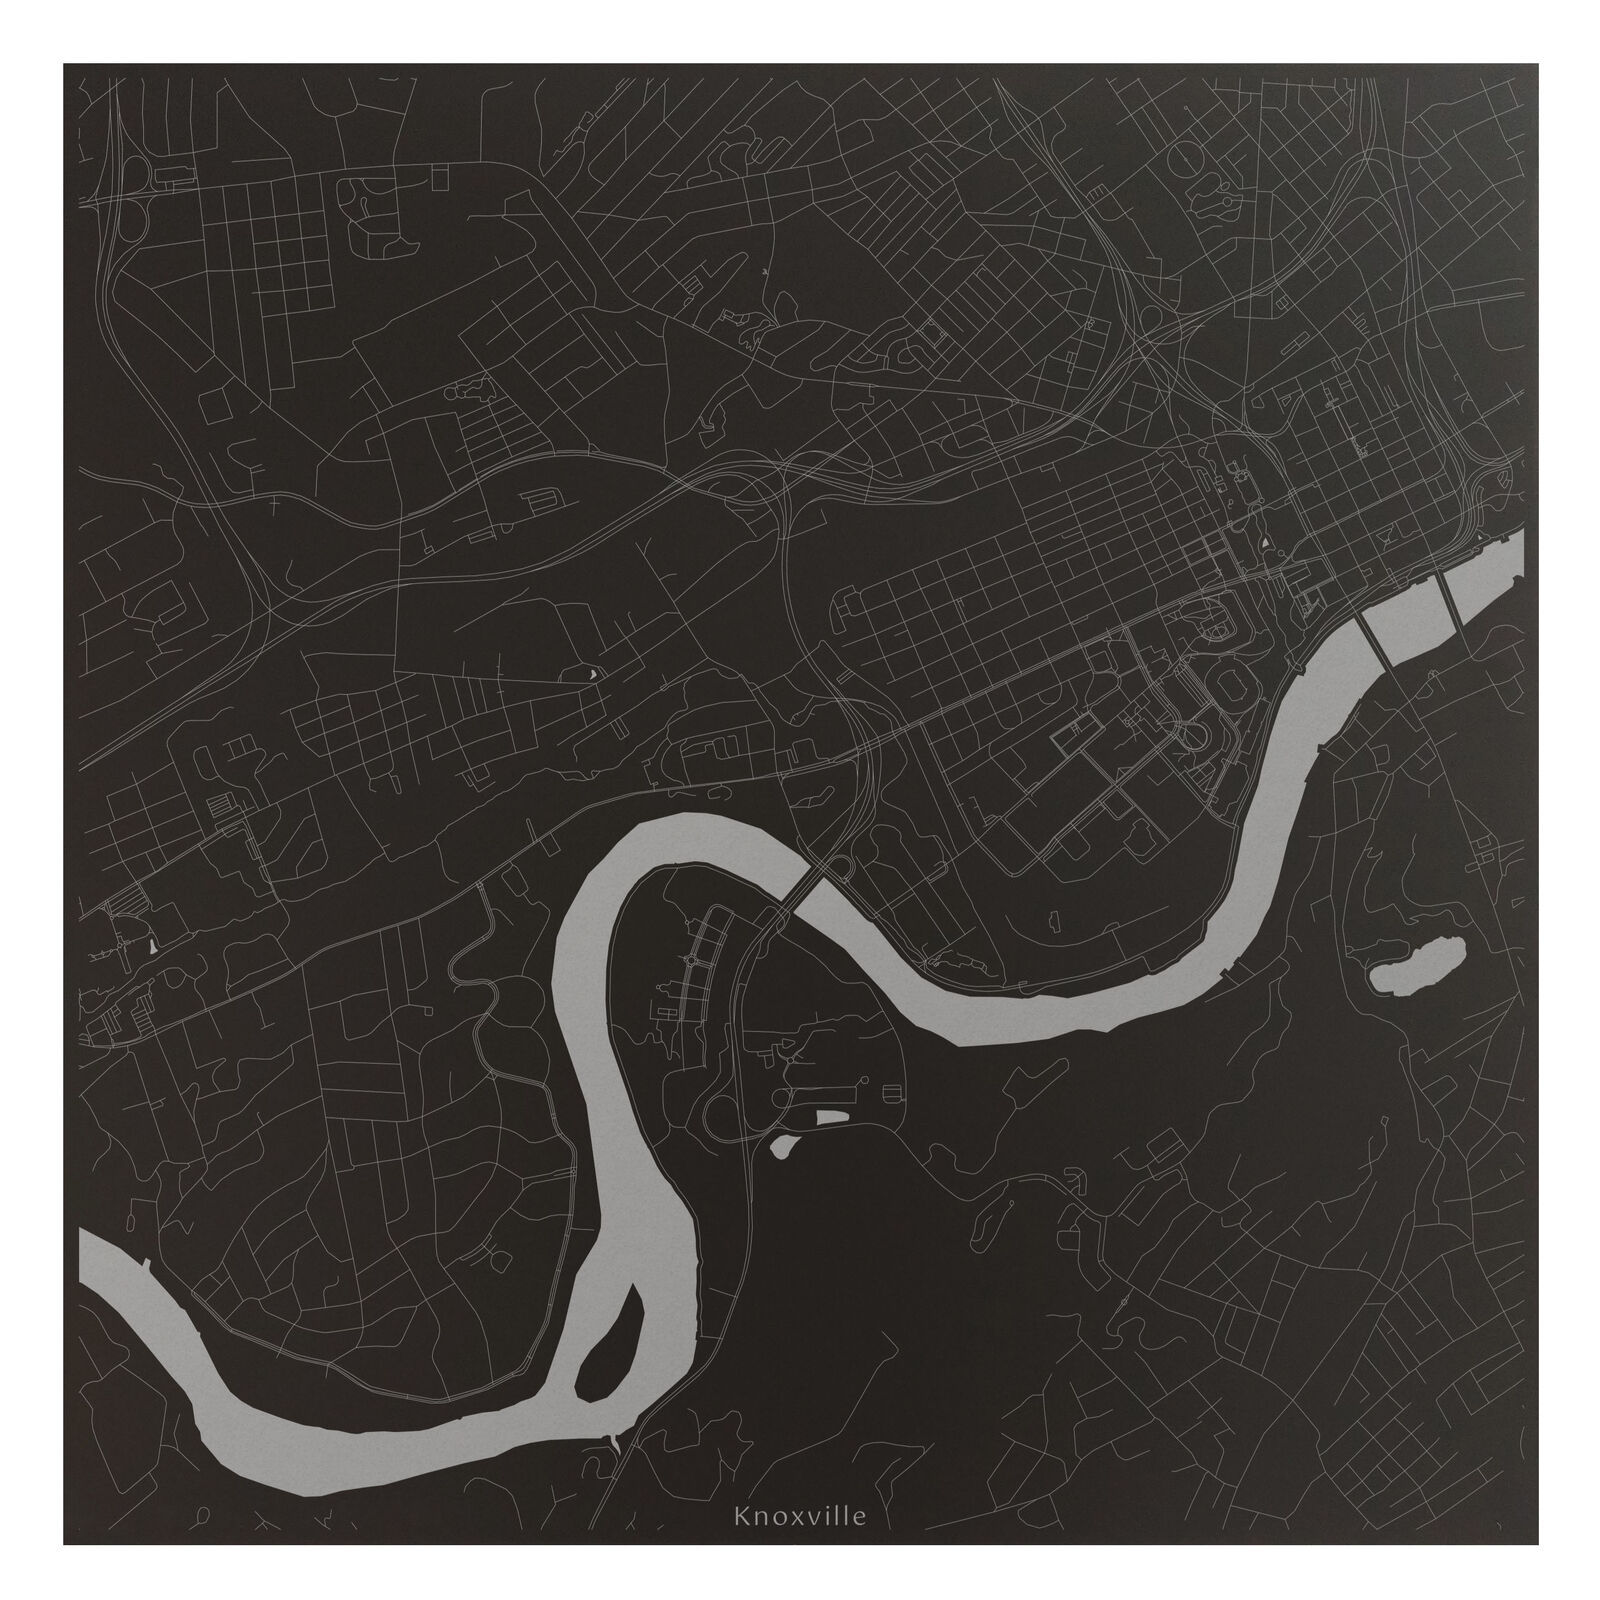 Knoxville Tennessee Laser Engraved Downtown City Map Wall Art Office Decor Gift - $48.37 - $217.68